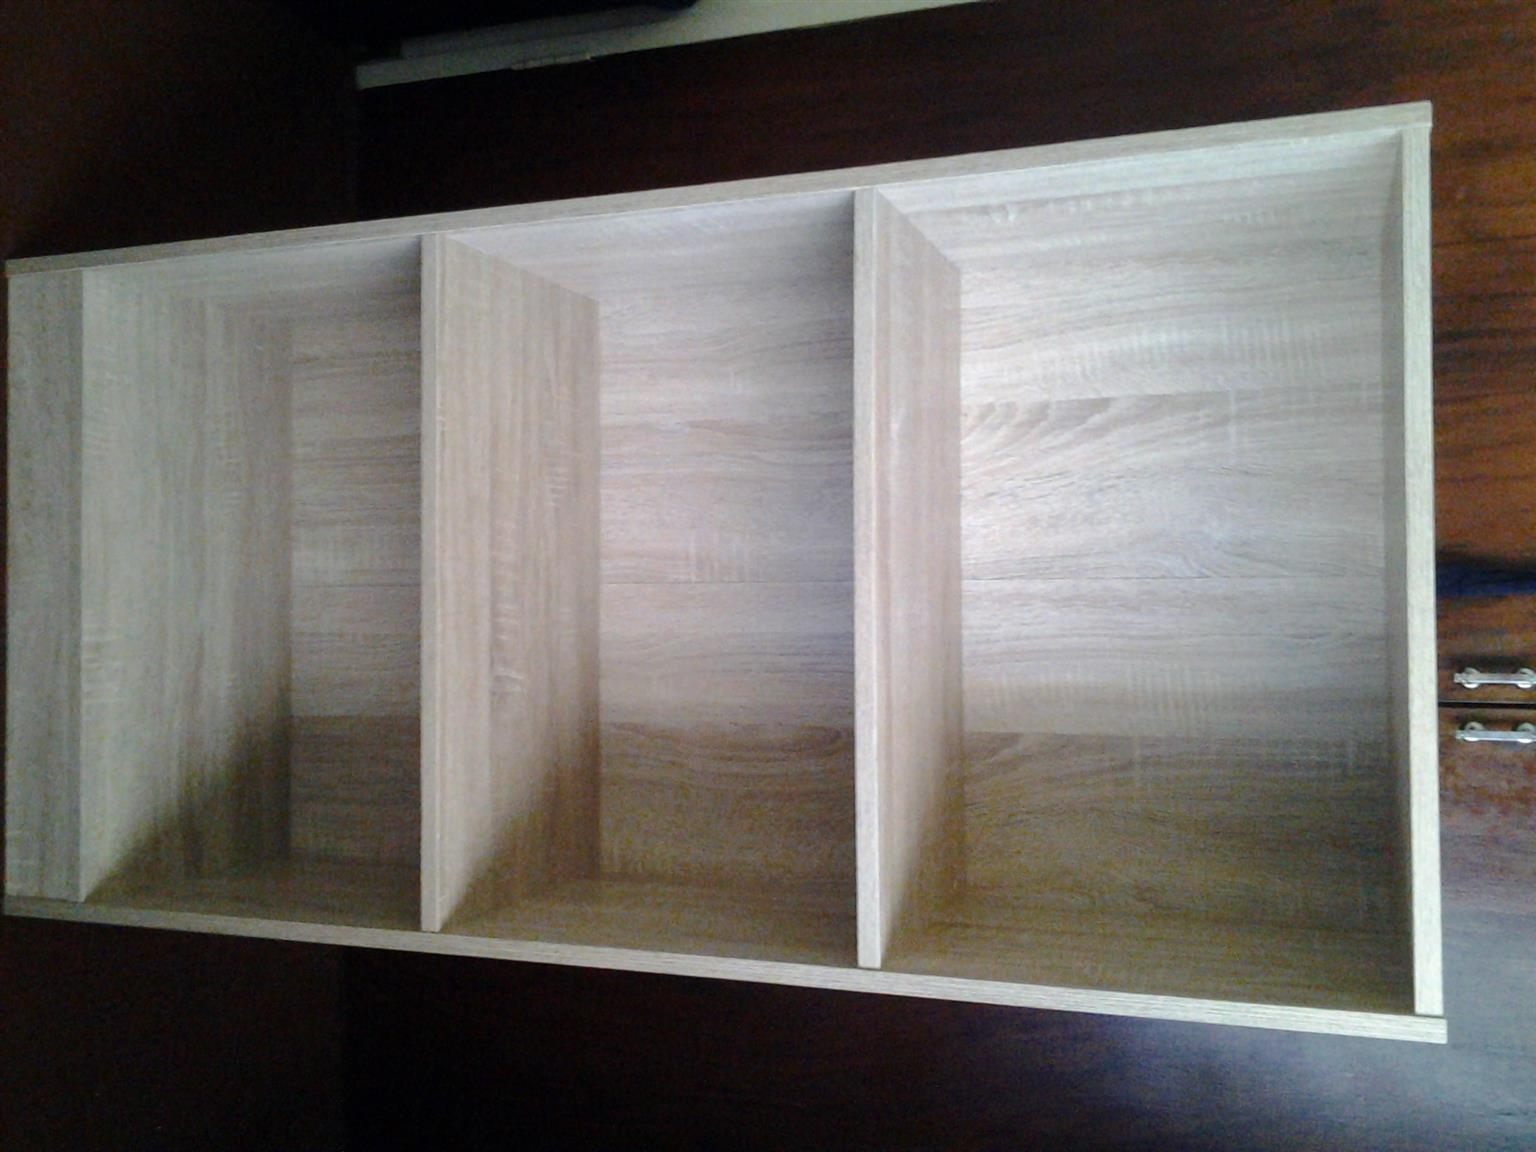 Office book case